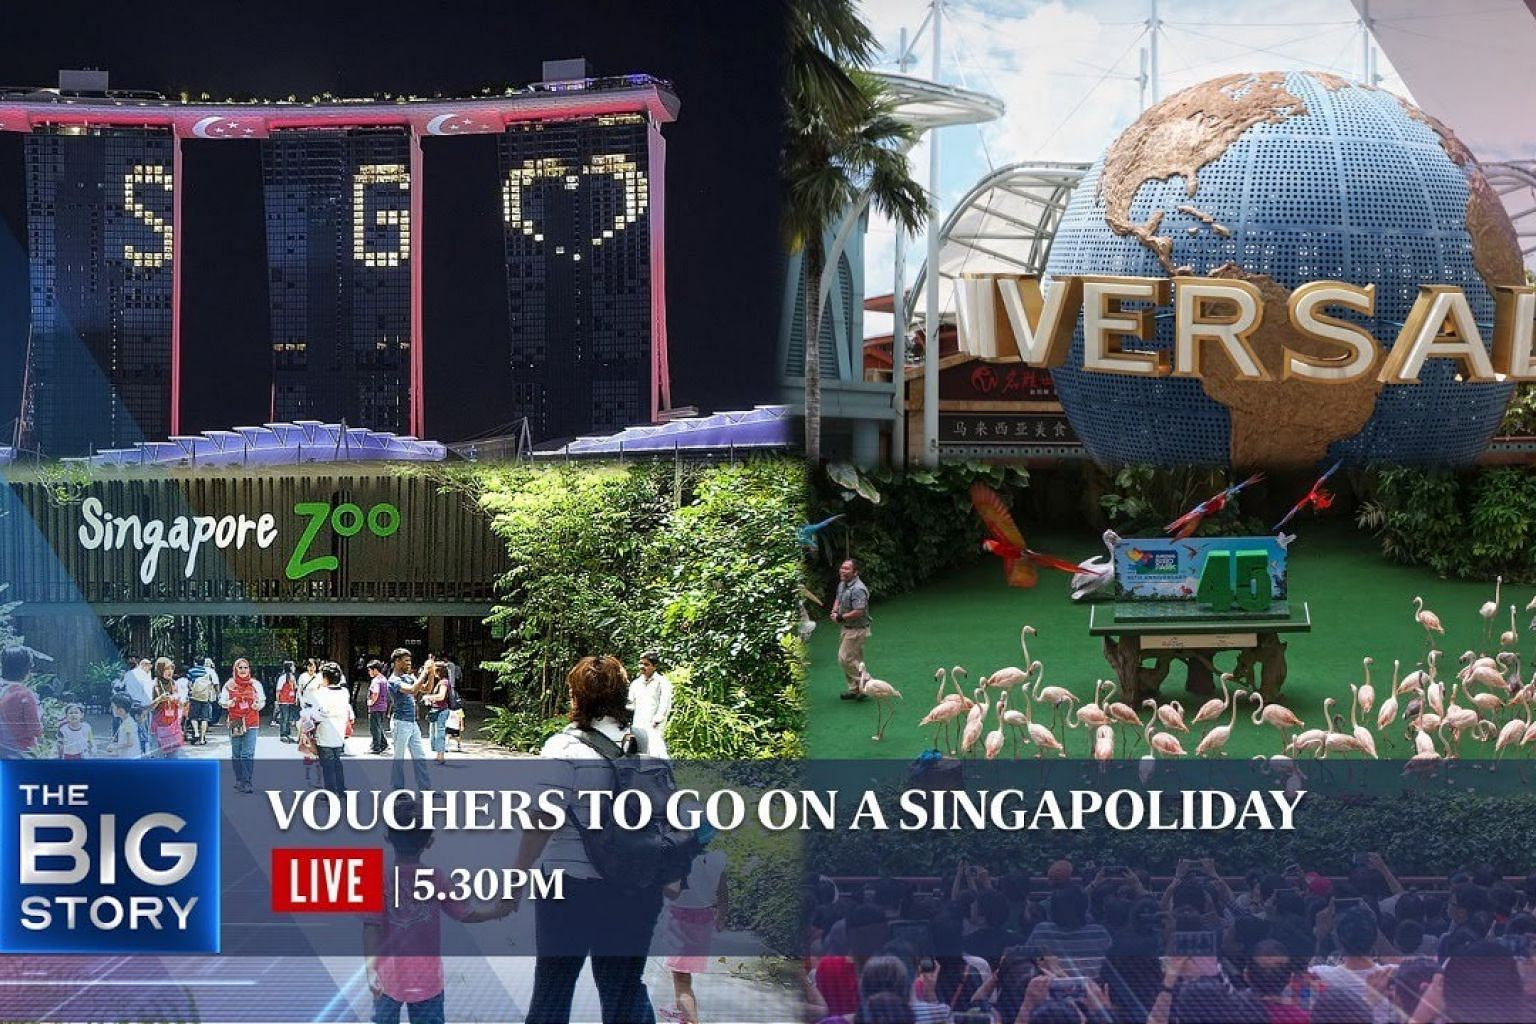 Vouchers for a Singapoliday | SIA lets go of half of trainee pilots and cabin crew | THE BIG STORY